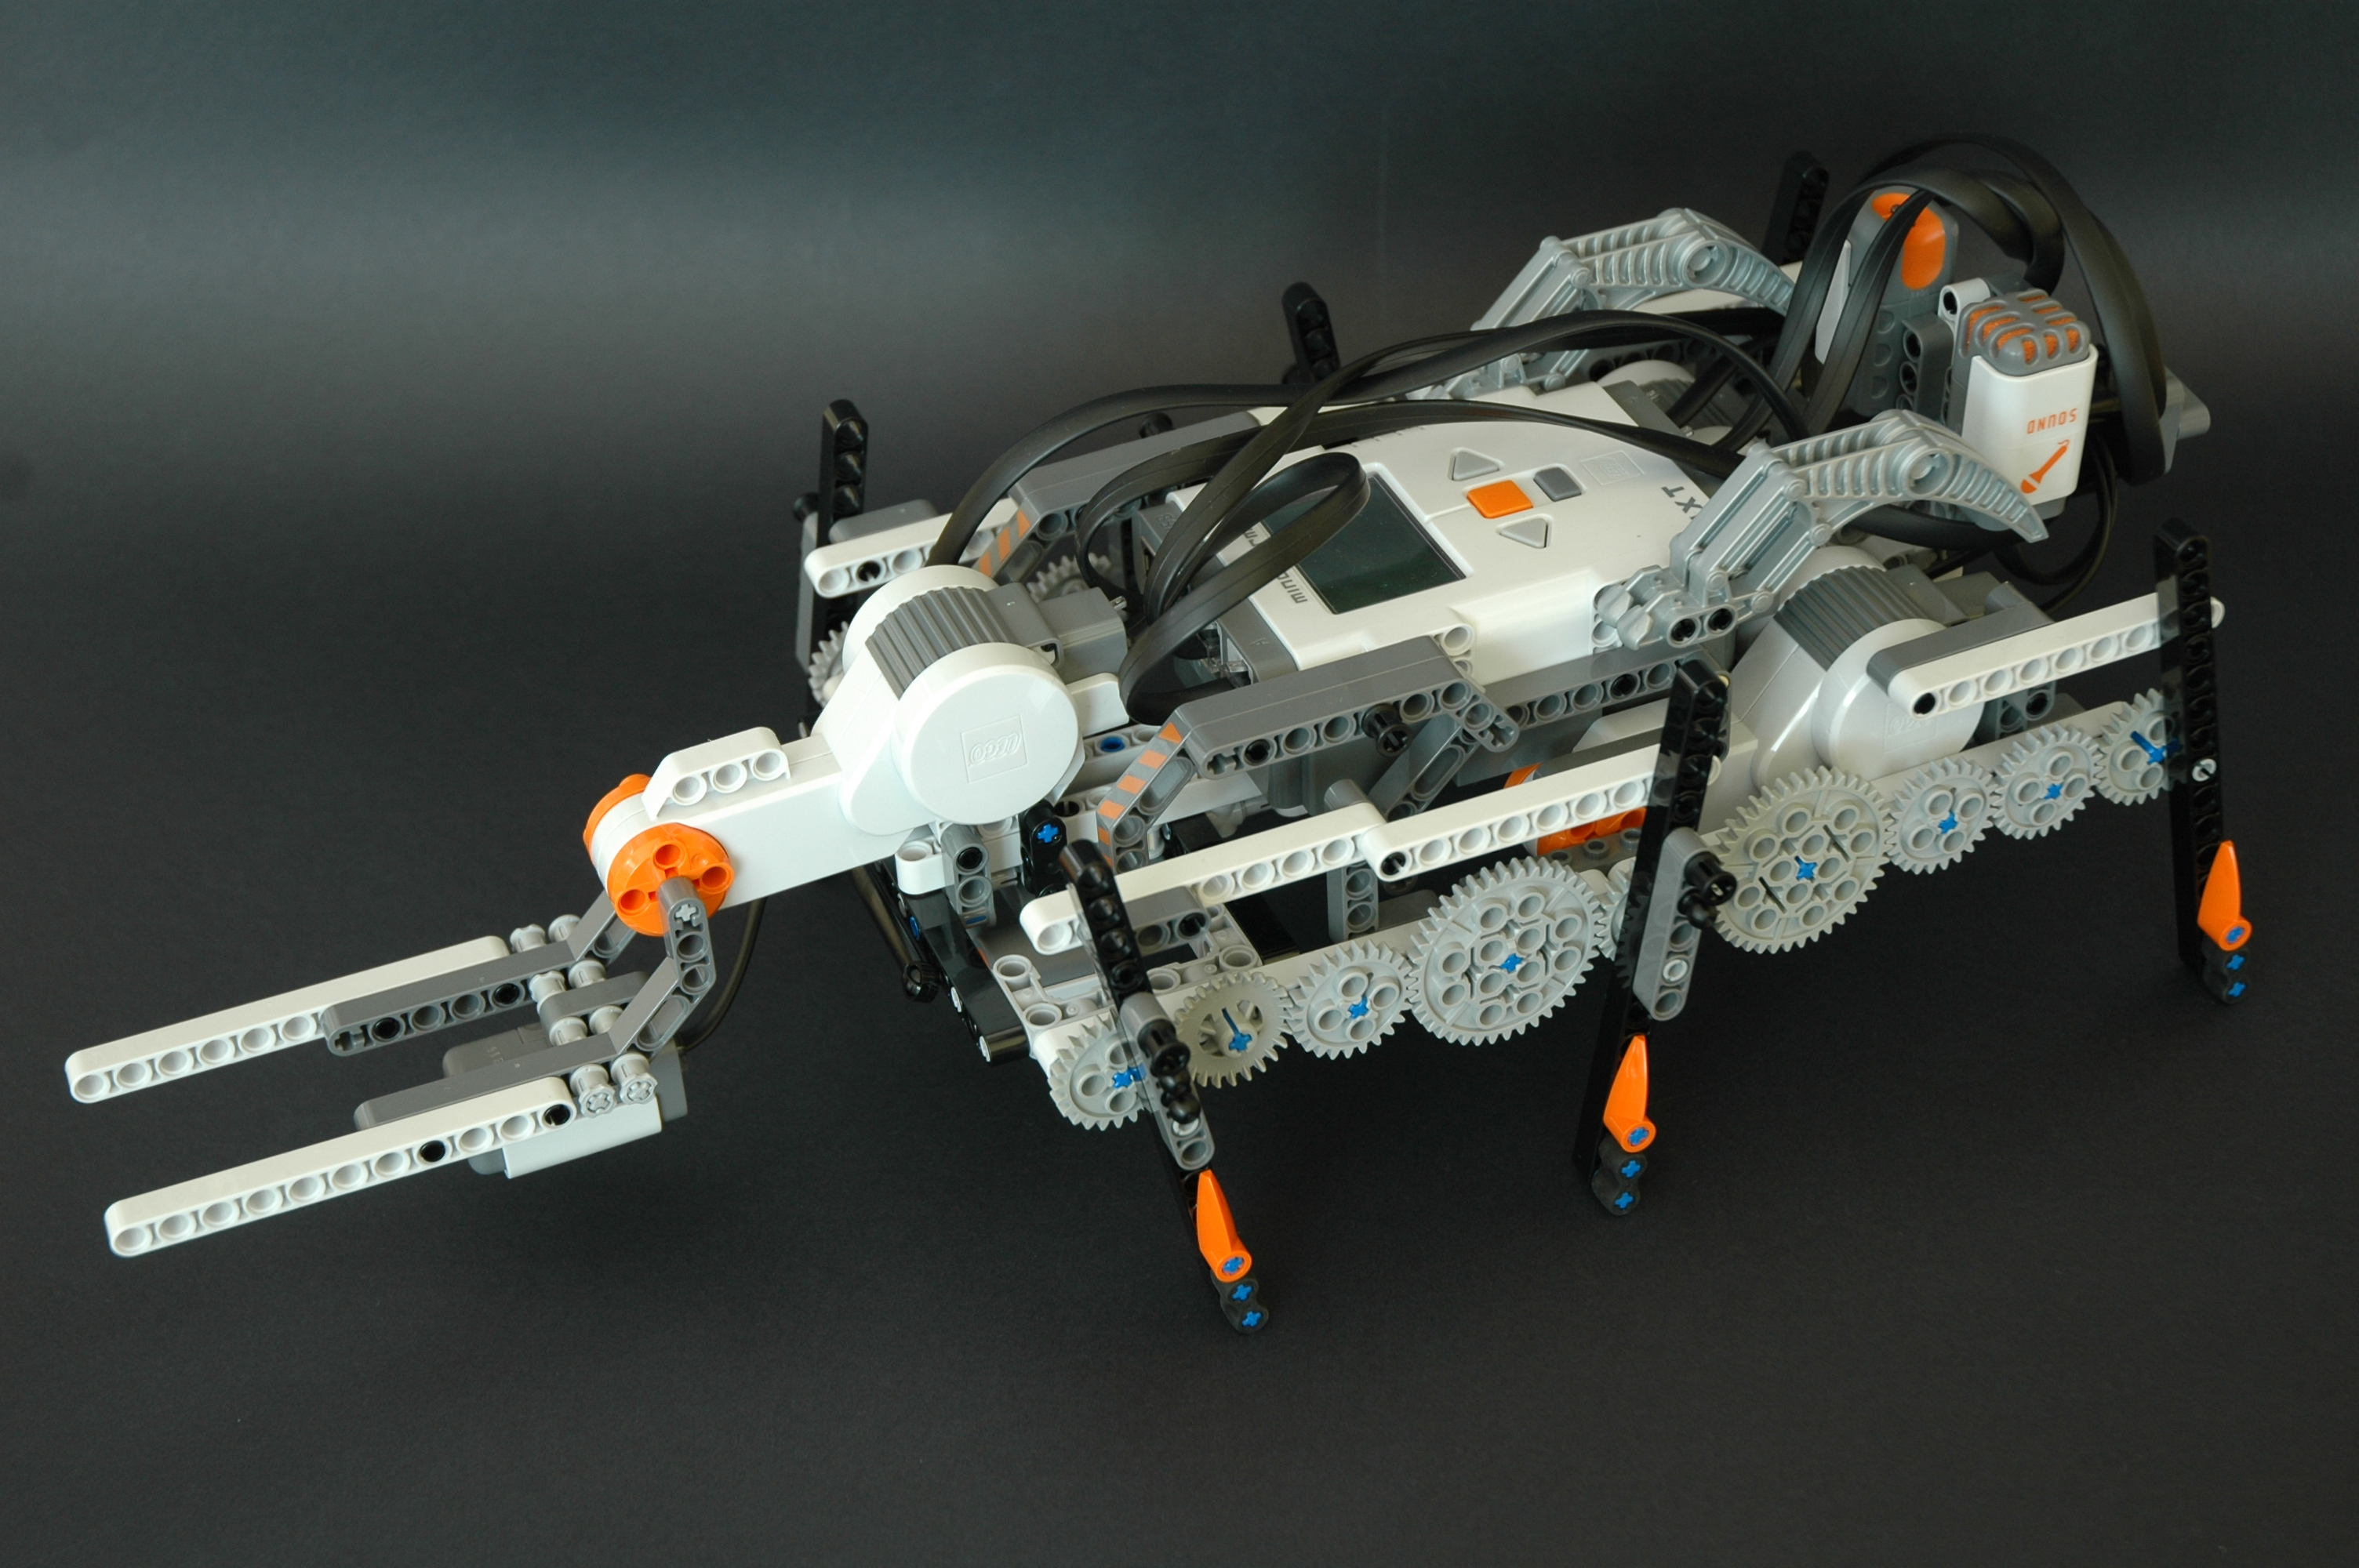 How to build a Lego Mindstorms NXT hexapod robot?